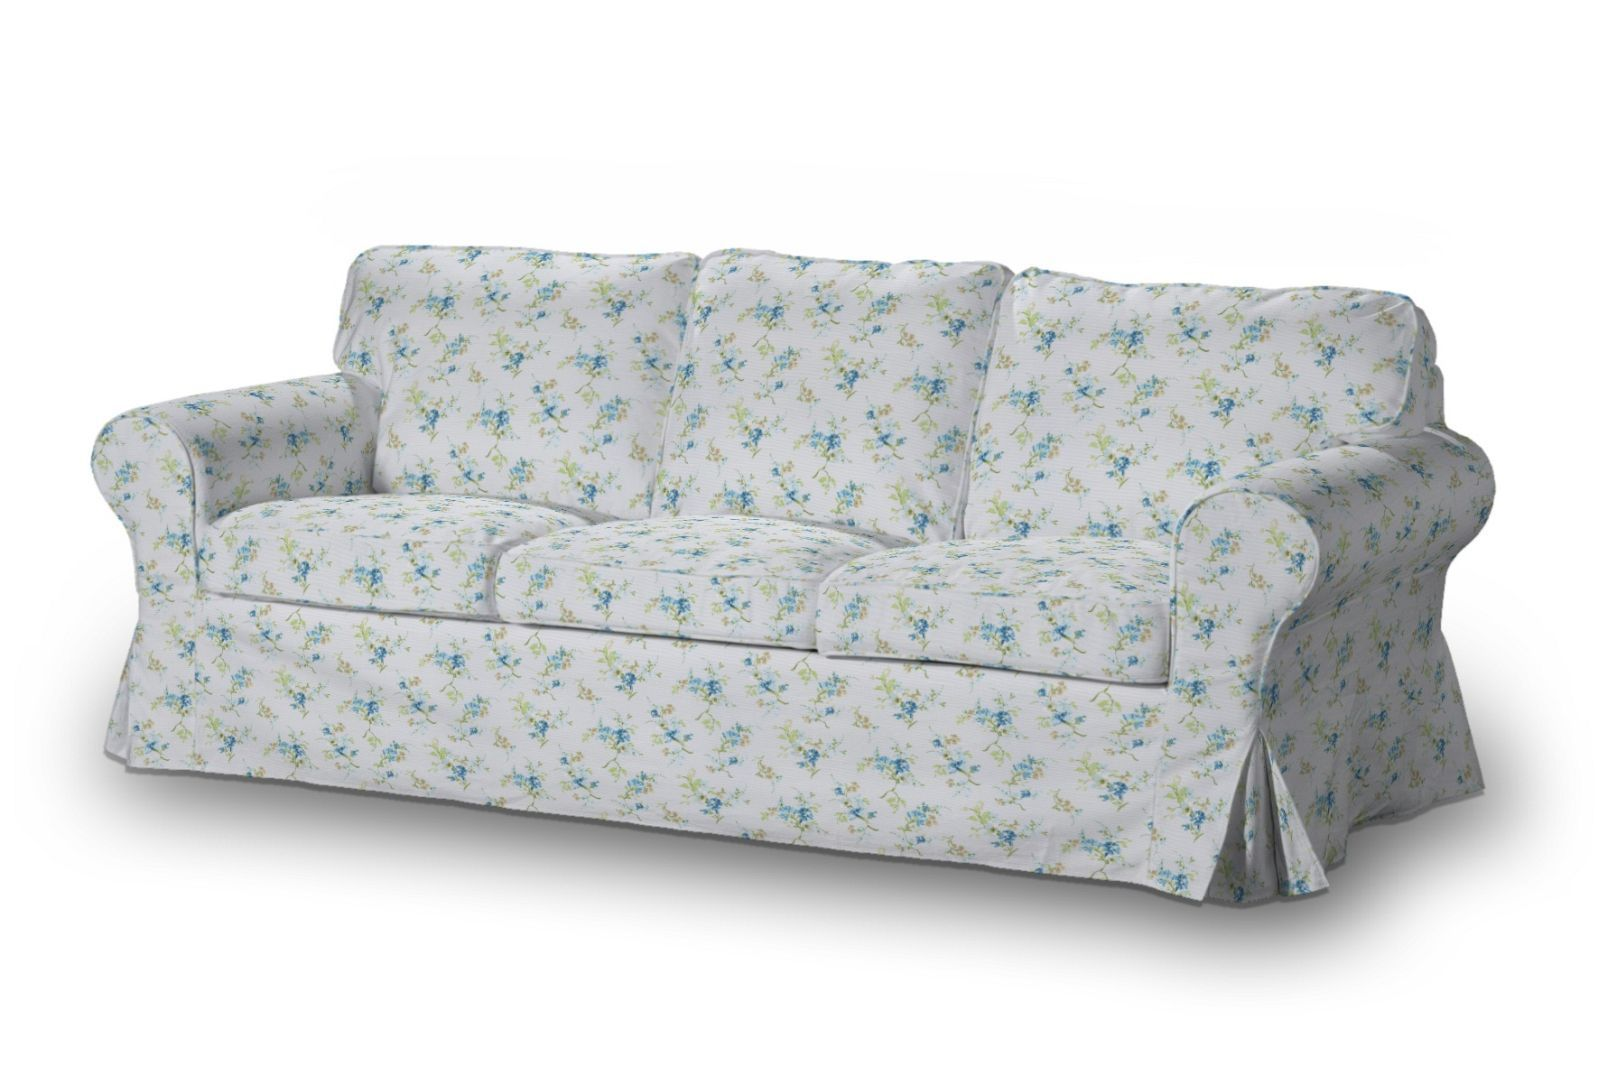 ektorp 3 seater sofa cover blue flowers on white background from rh pinterest ca